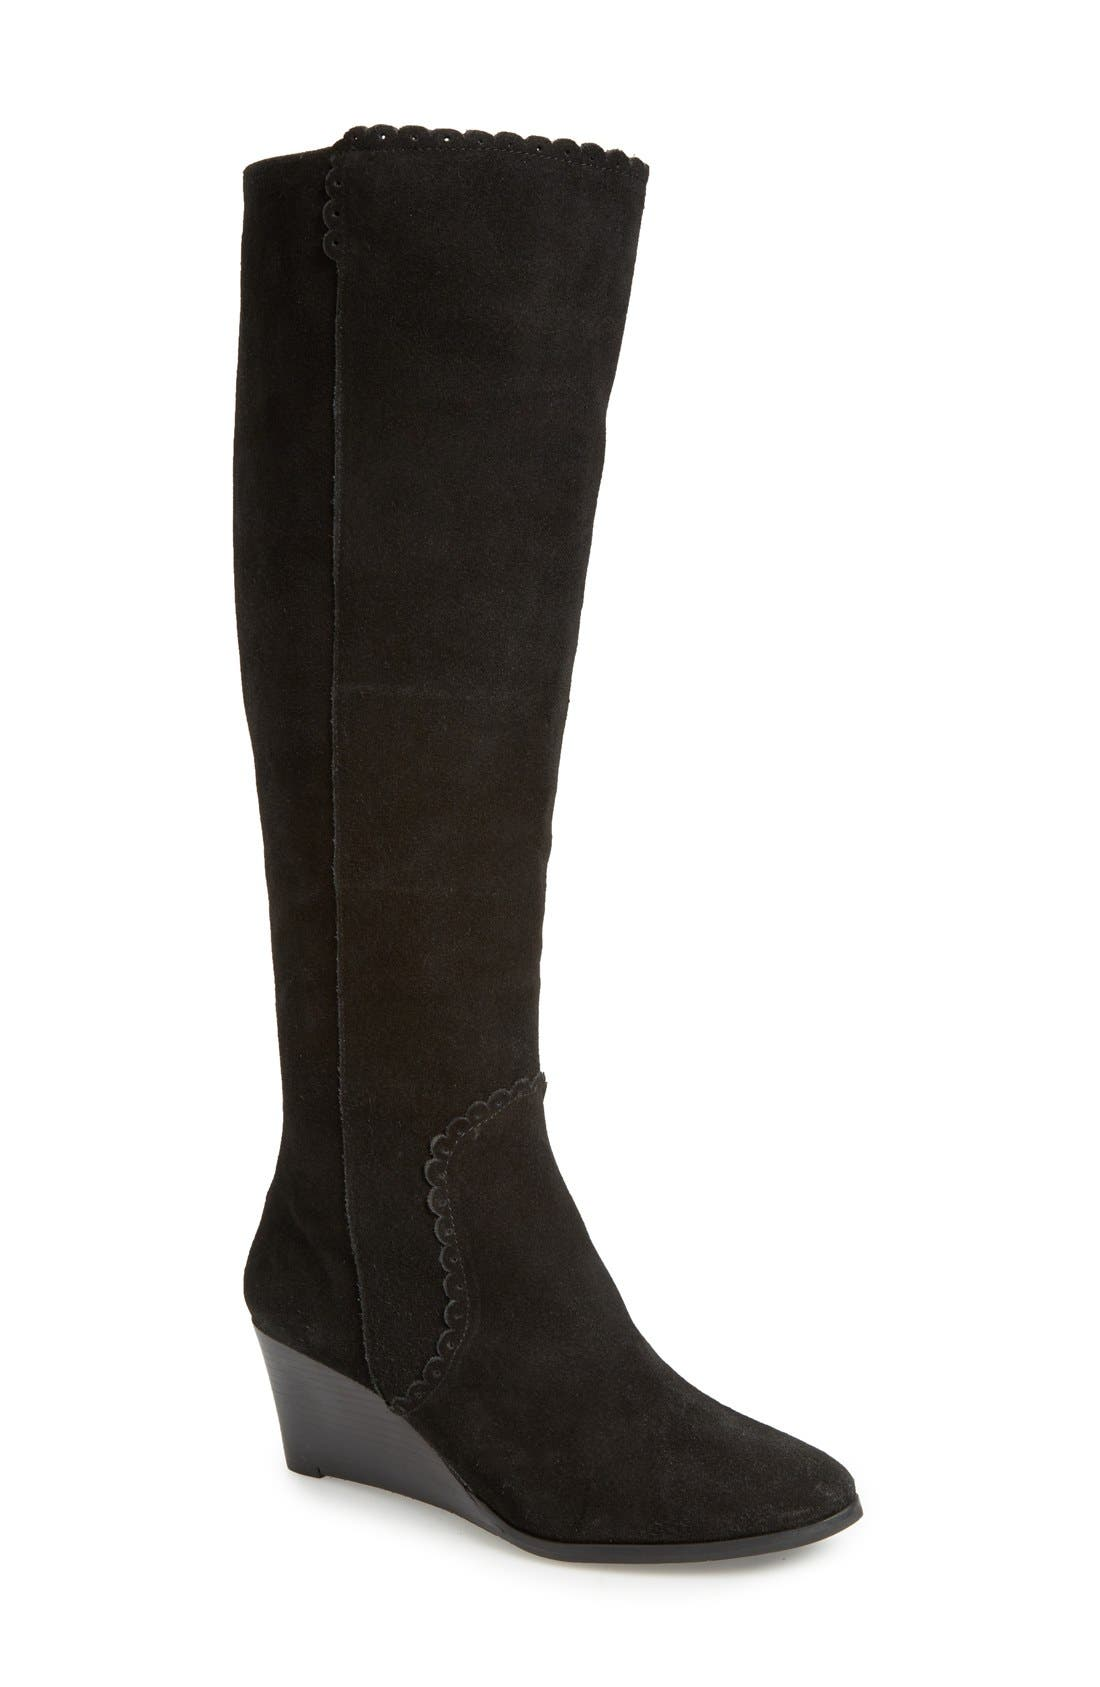 Alternate Image 1 Selected - Jack Rogers 'Mia' Knee High Wedge Boot (Women)